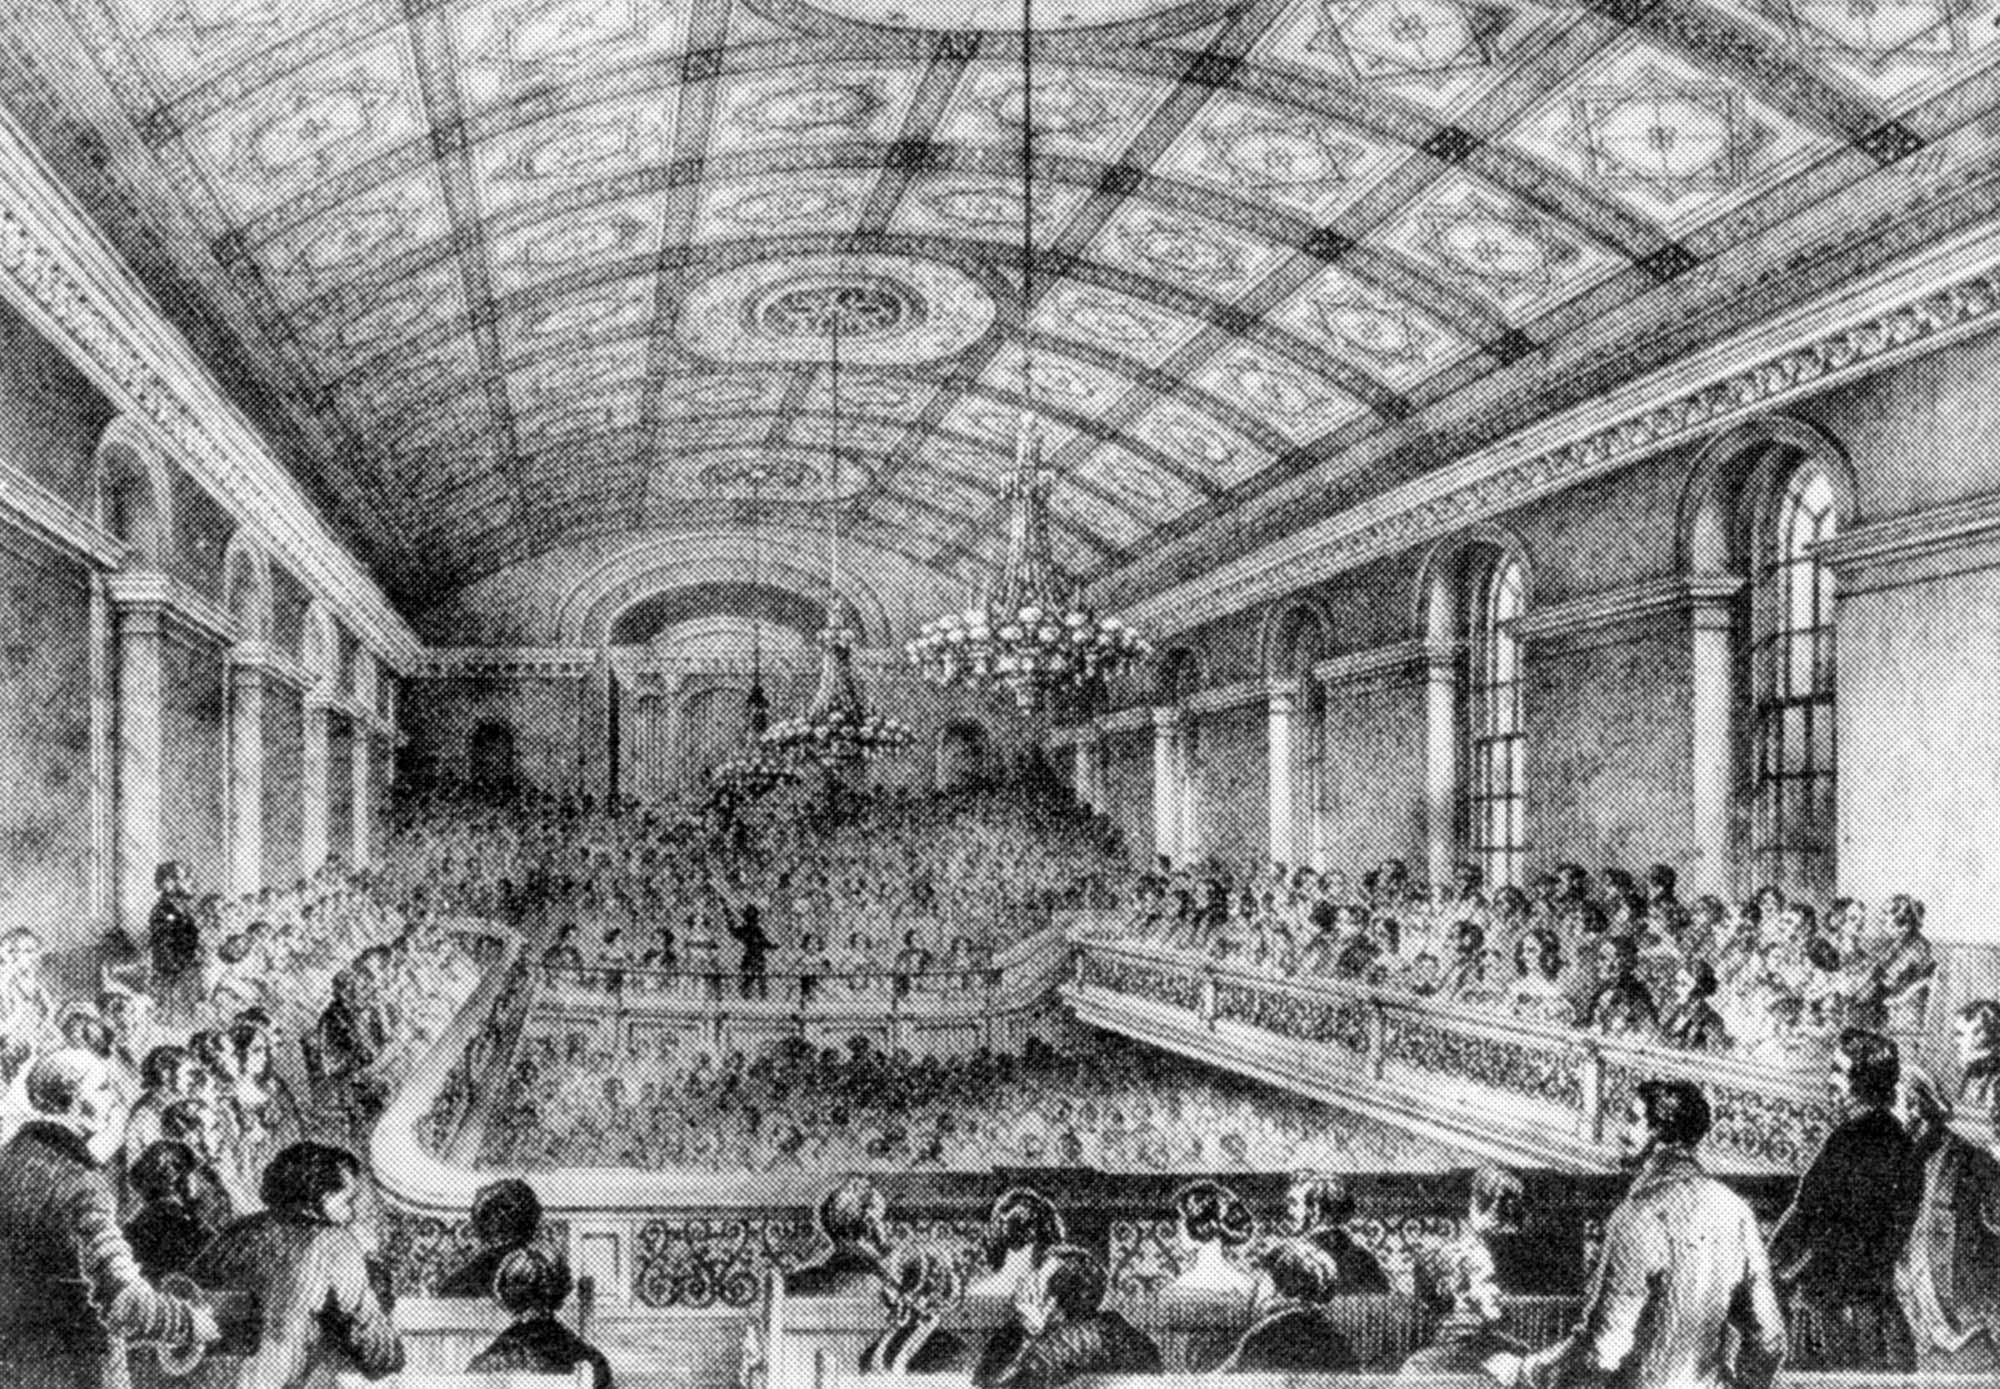 A drawing of the interior of the Temperance Hall in its heyday - Thomas Cook Archives